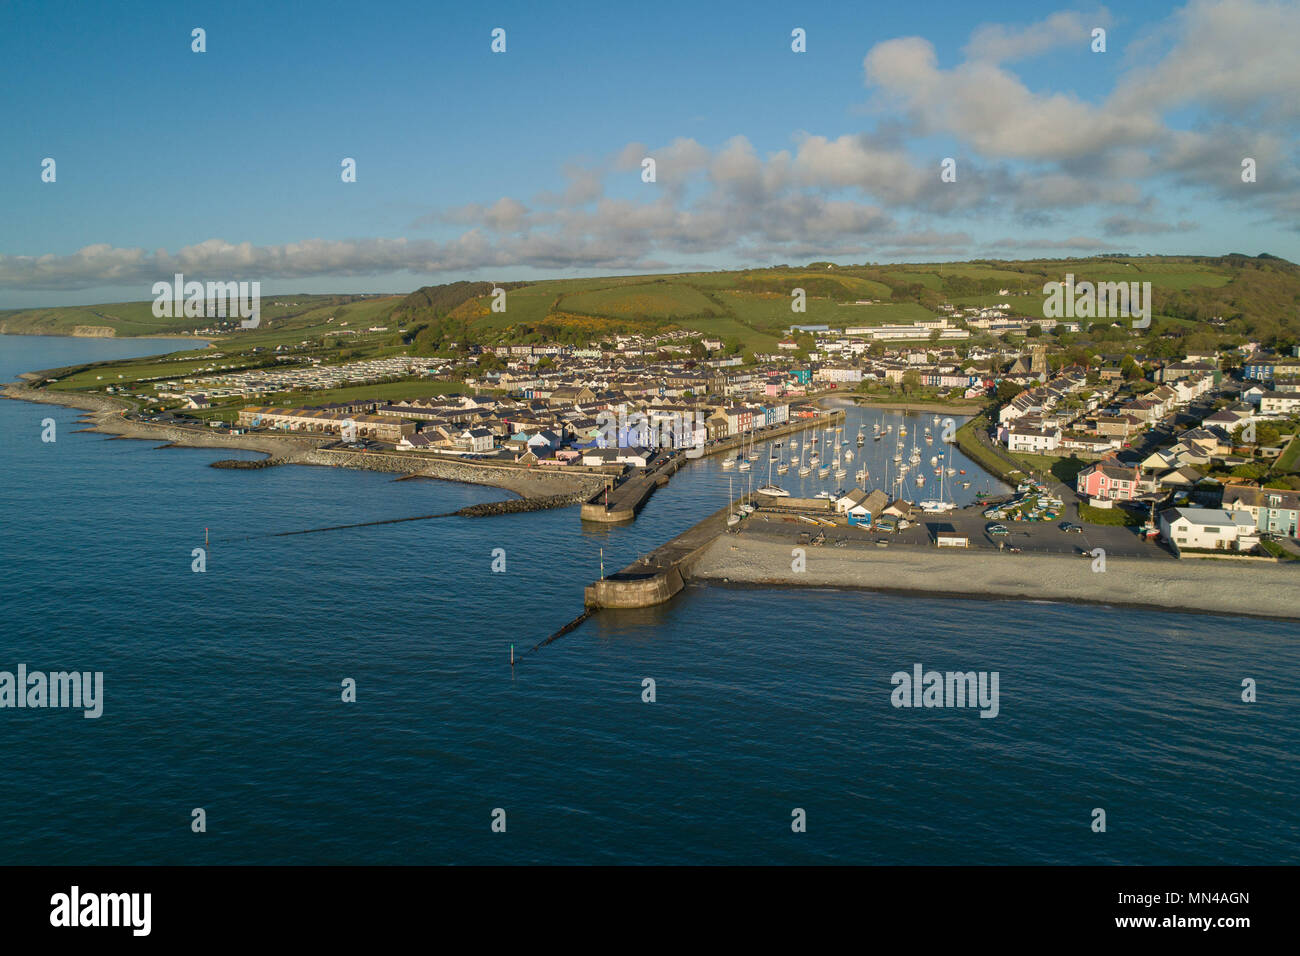 Aberaeron, Ceredigion Wales UK,  Monday May 14 2018  UK weather: a gloriously sunny evening in Aberaeron, a small town on the west Wales coast, with its houses huddled around its picturesque harbour  Arial photo by CAA licenced drone pilot  photo © Keith Morris / Alamy Live News Stock Photo